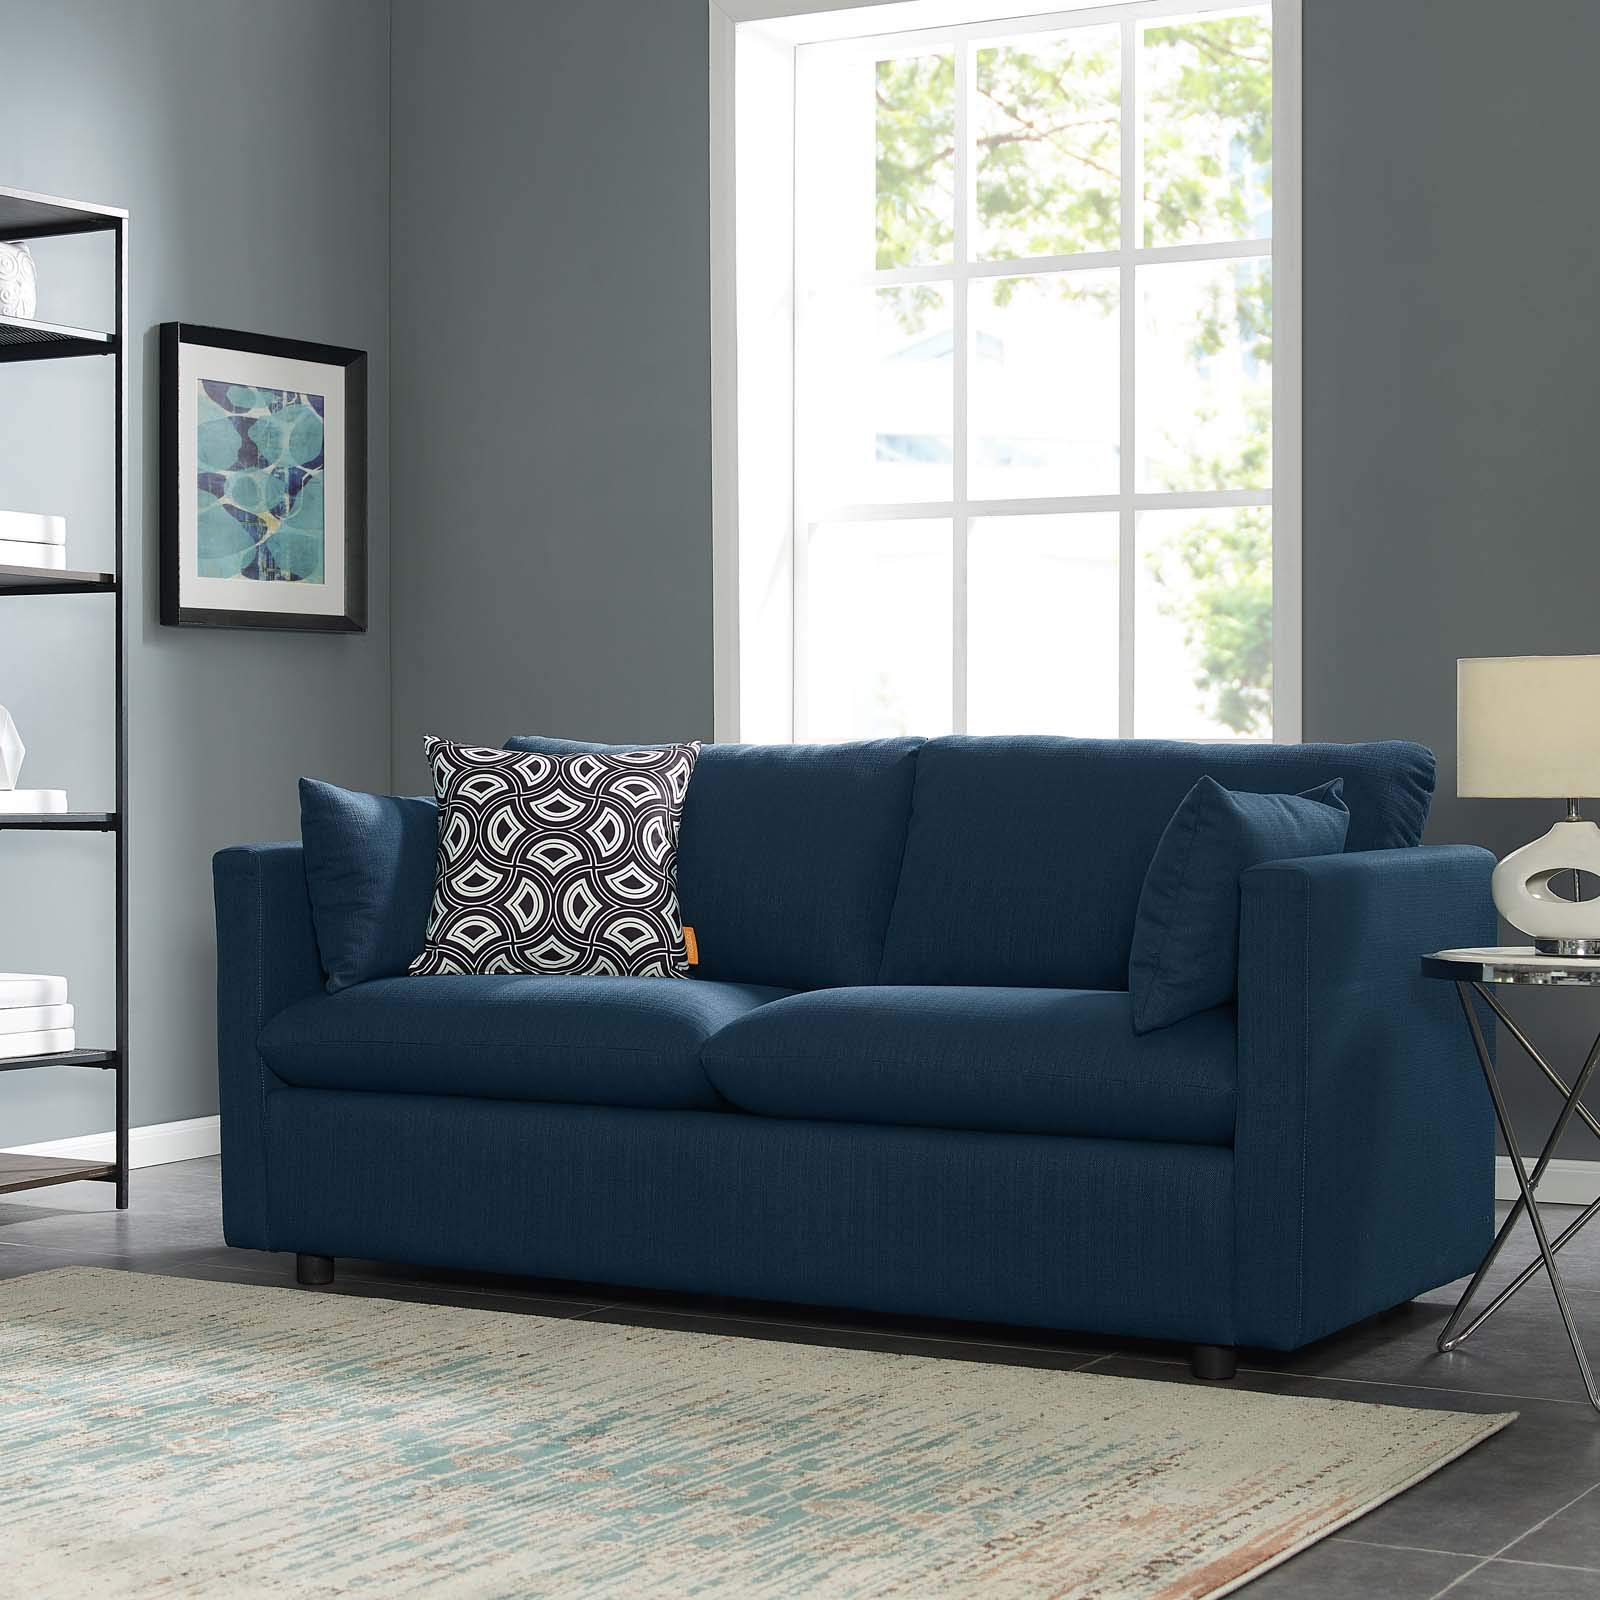 CDM product Modway Activate Contemporary Modern Fabric Upholstered Apartment Sofa Couch In Azure big image